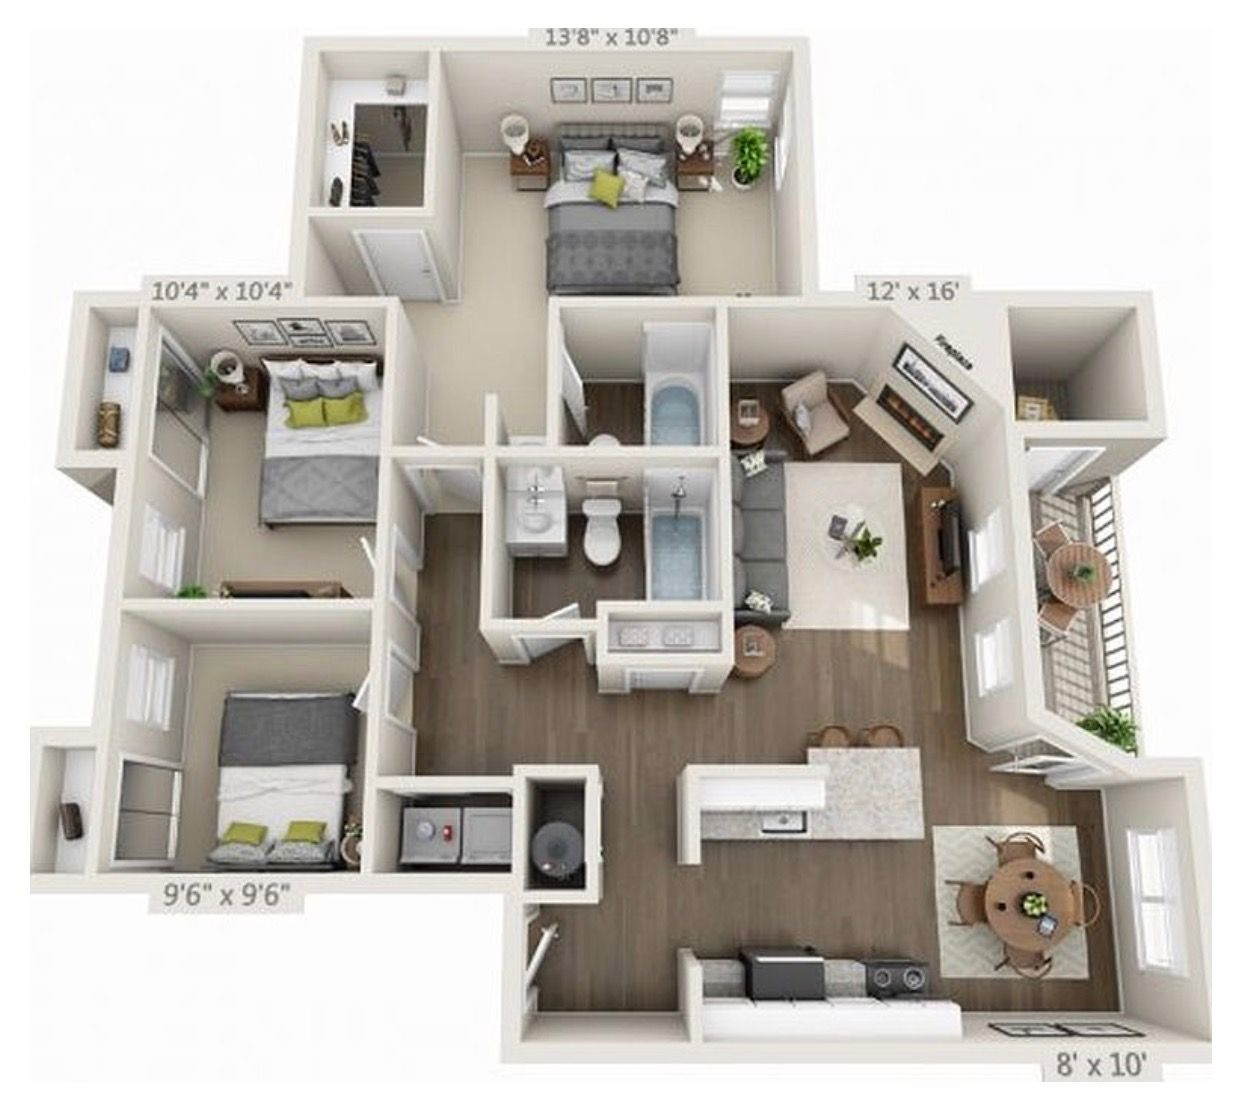 Pin By Tawcha Blanton On Home Designs Design Your Dream House Architectural Floor Plans Small House Layout